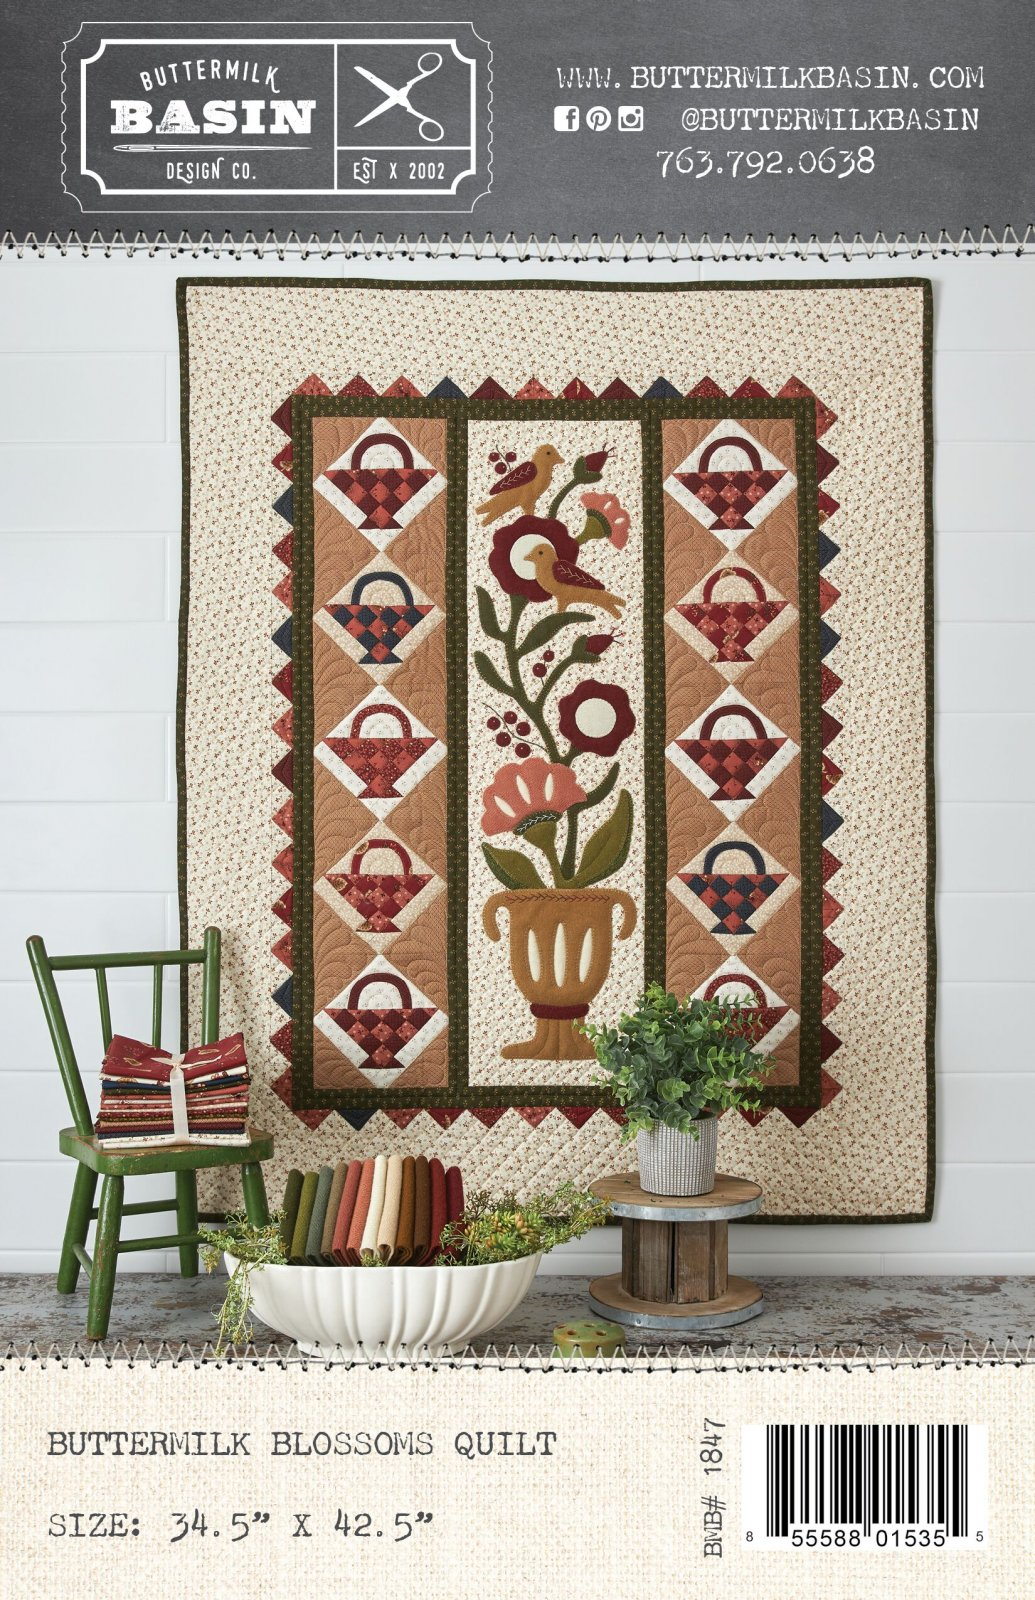 Buttermilk Blossoms Quilt *Kit & Pattern